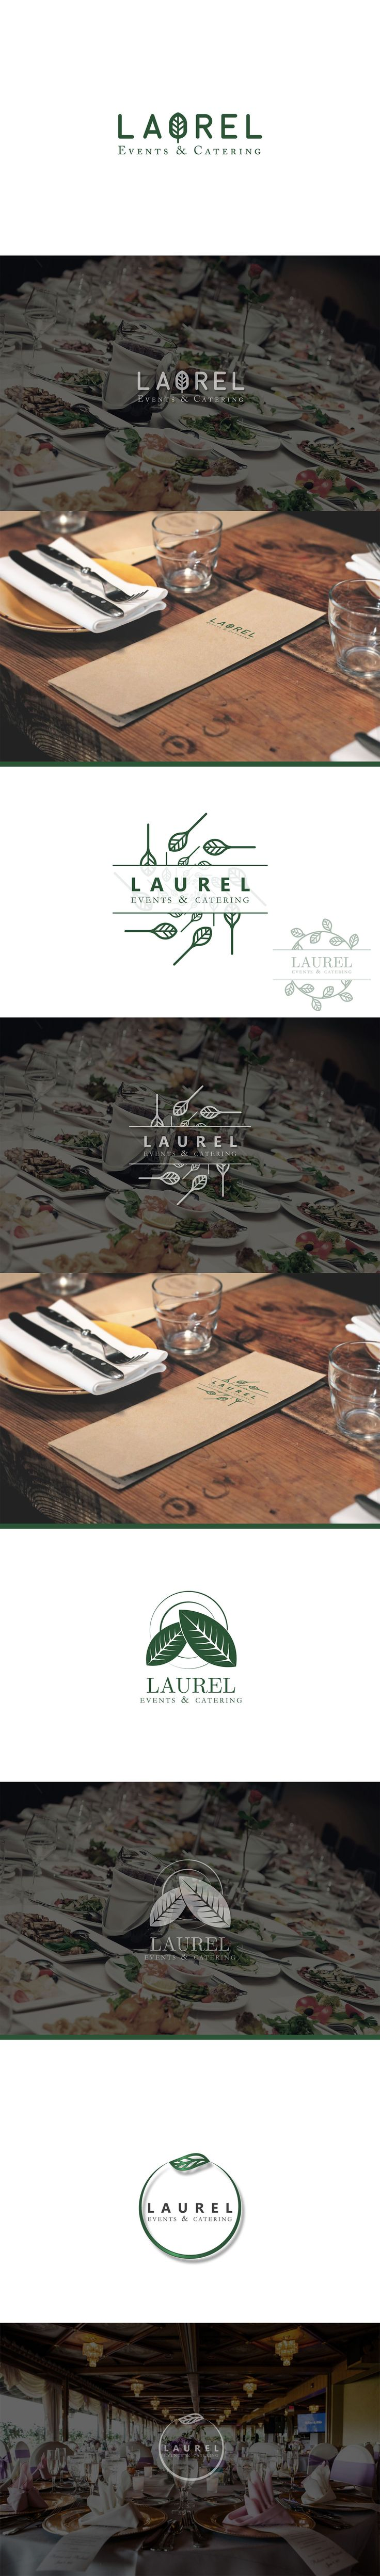 "Check out my @Behance project: ""Laurel Events & Catering - Branding concepts"" https://www.behance.net/gallery/52941381/Laurel-Events-Catering-Branding-concepts"